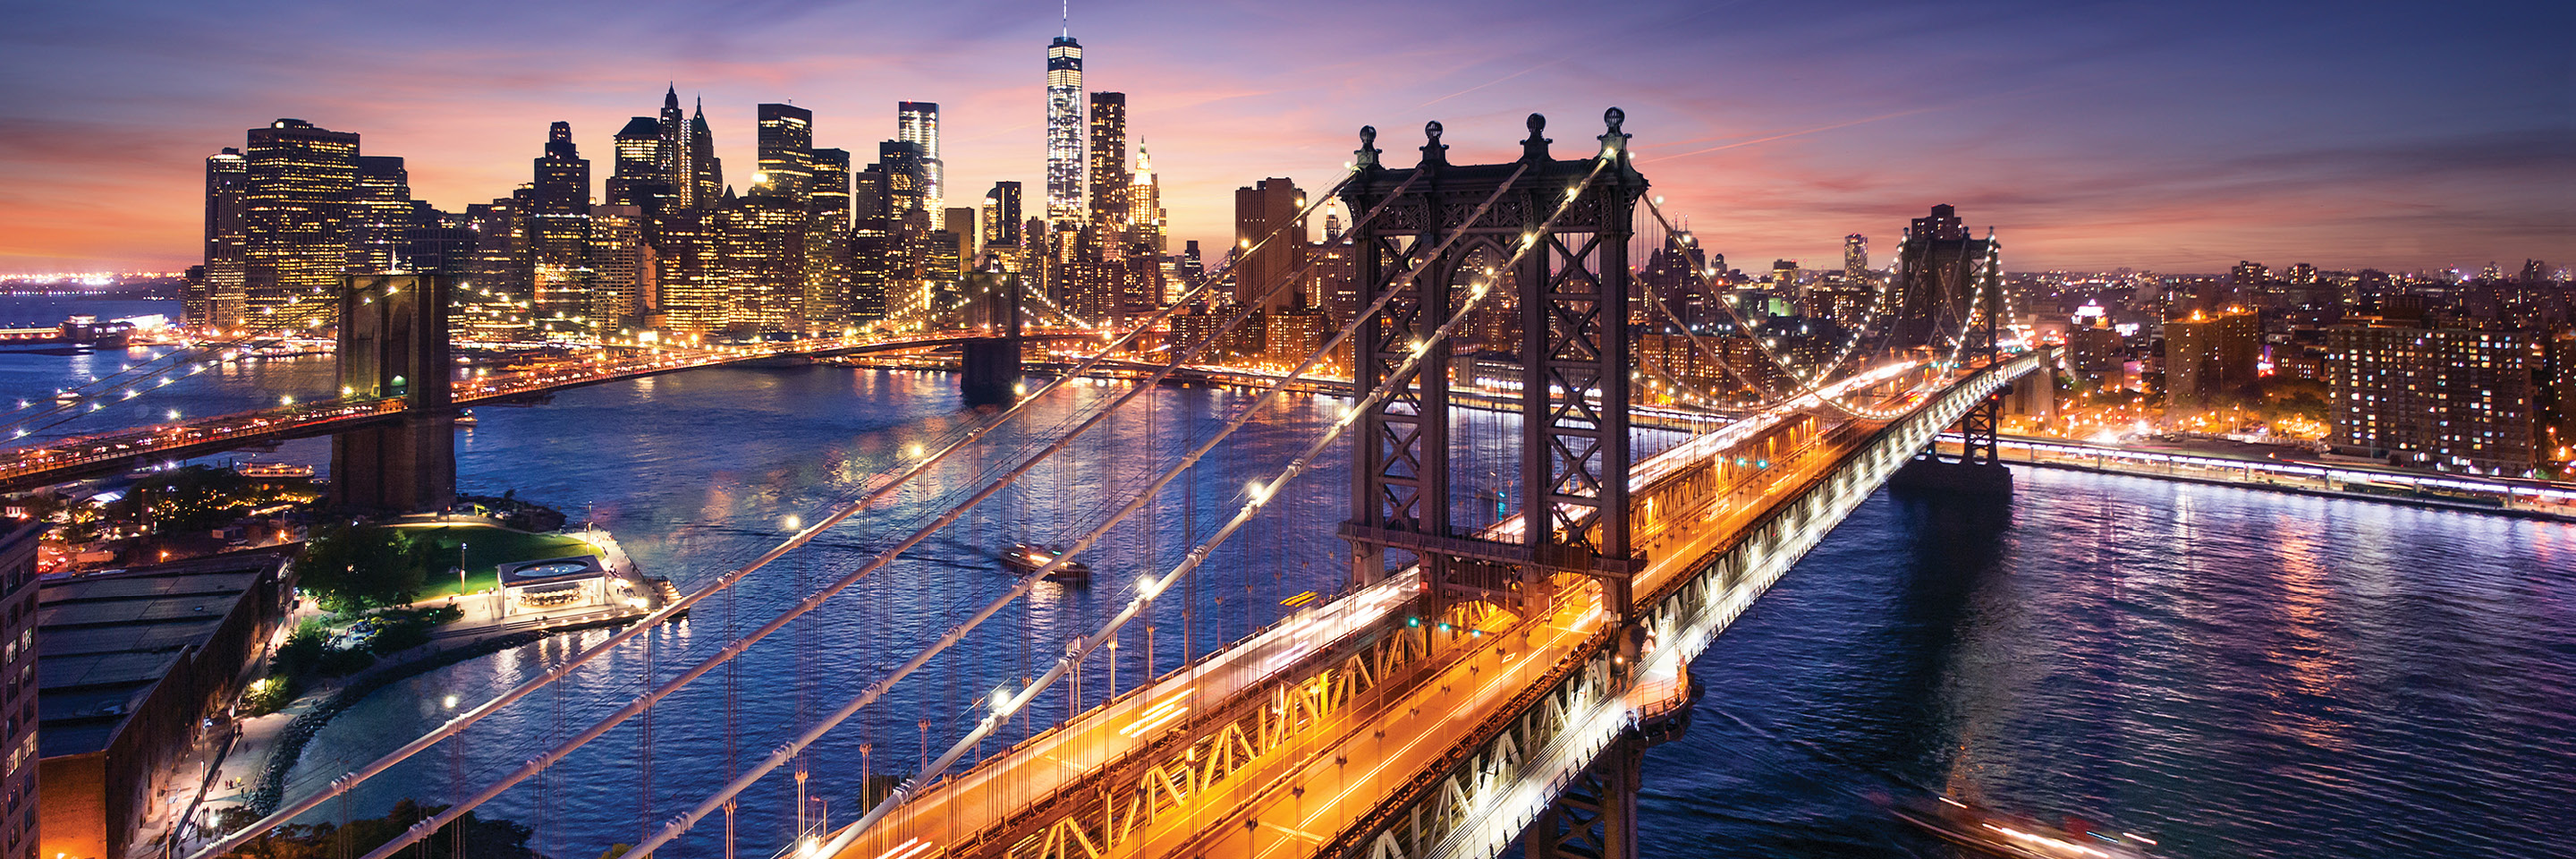 New York City, Niagara Falls & Washington DC with Extended Stay in New York City